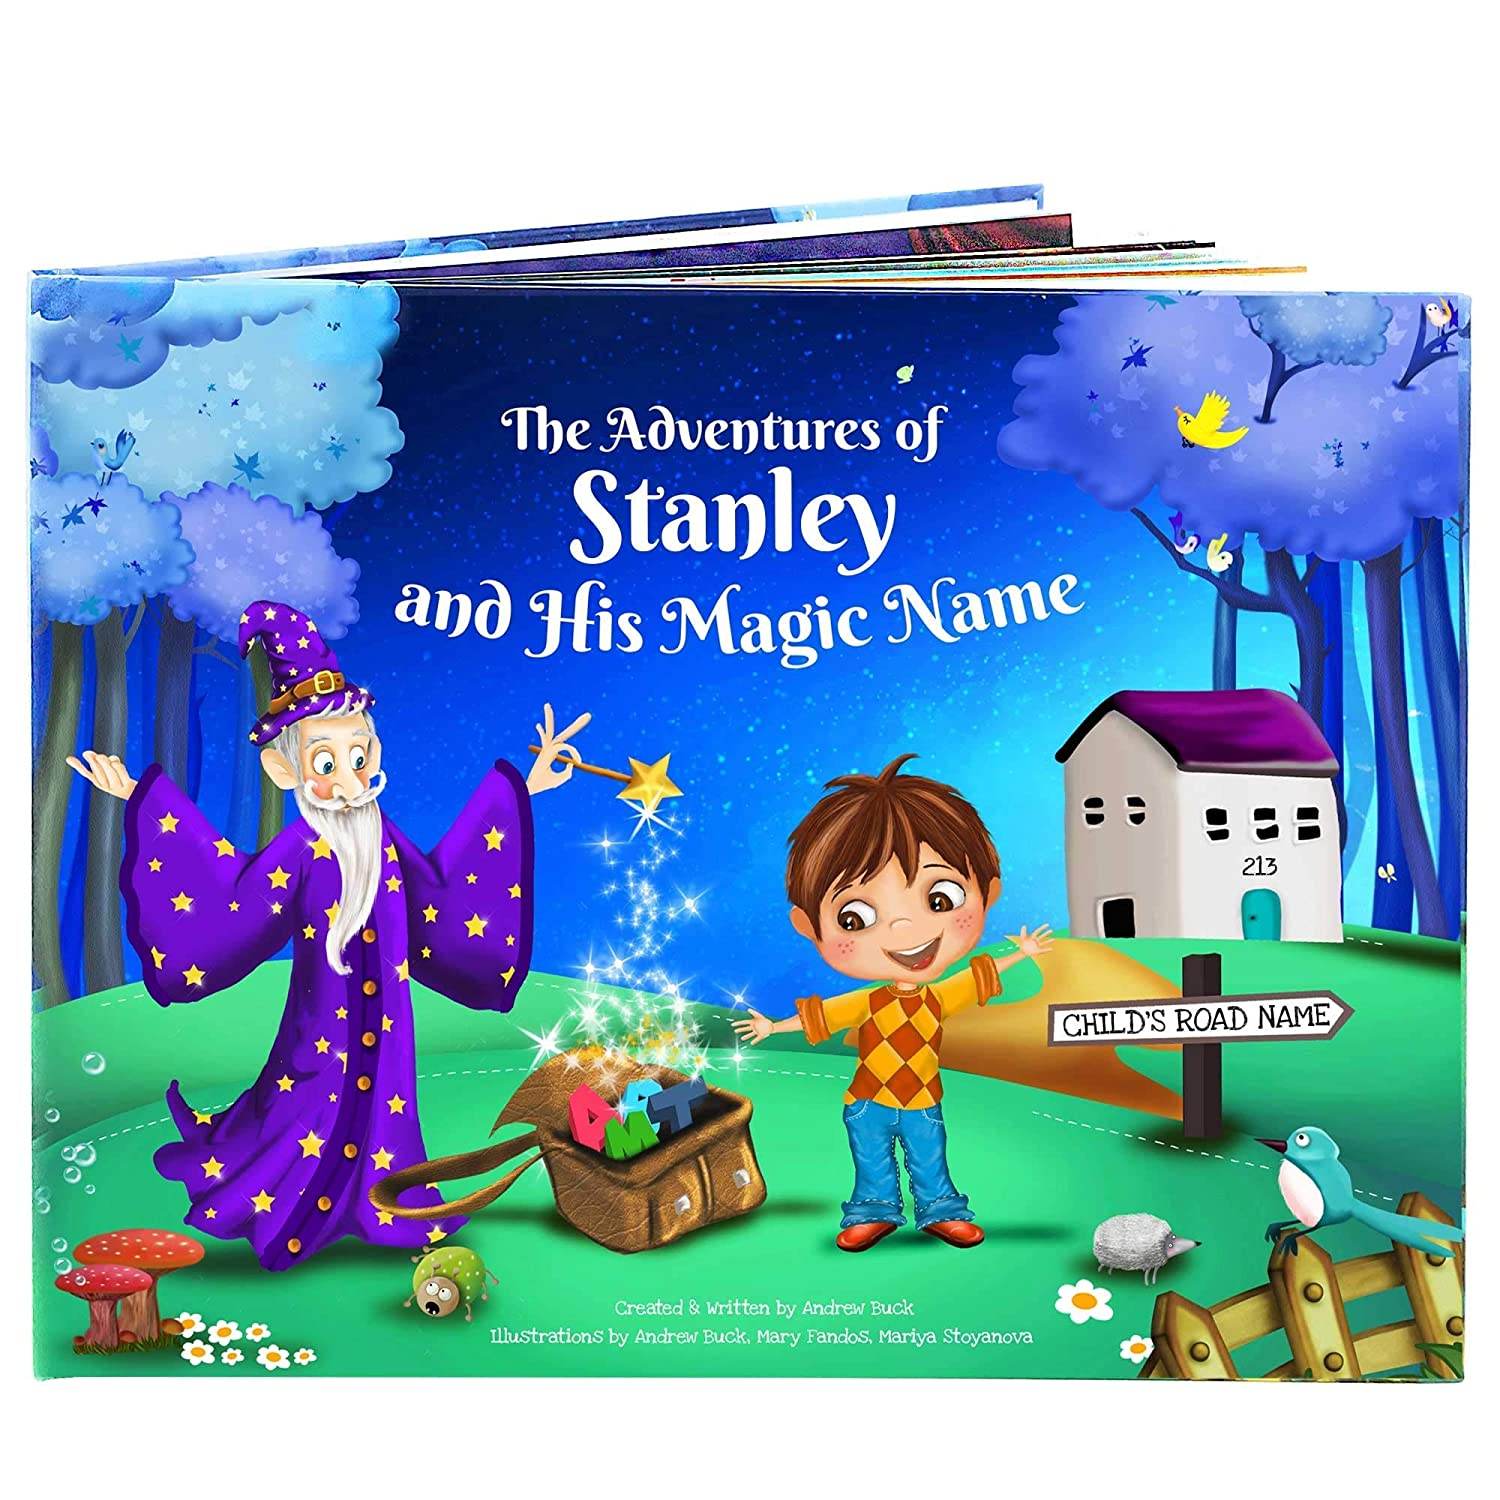 Grandson Granddaughter Gift Book - A Personalised Children's Story Book - Handmade - Unique Story for Every Child's Name